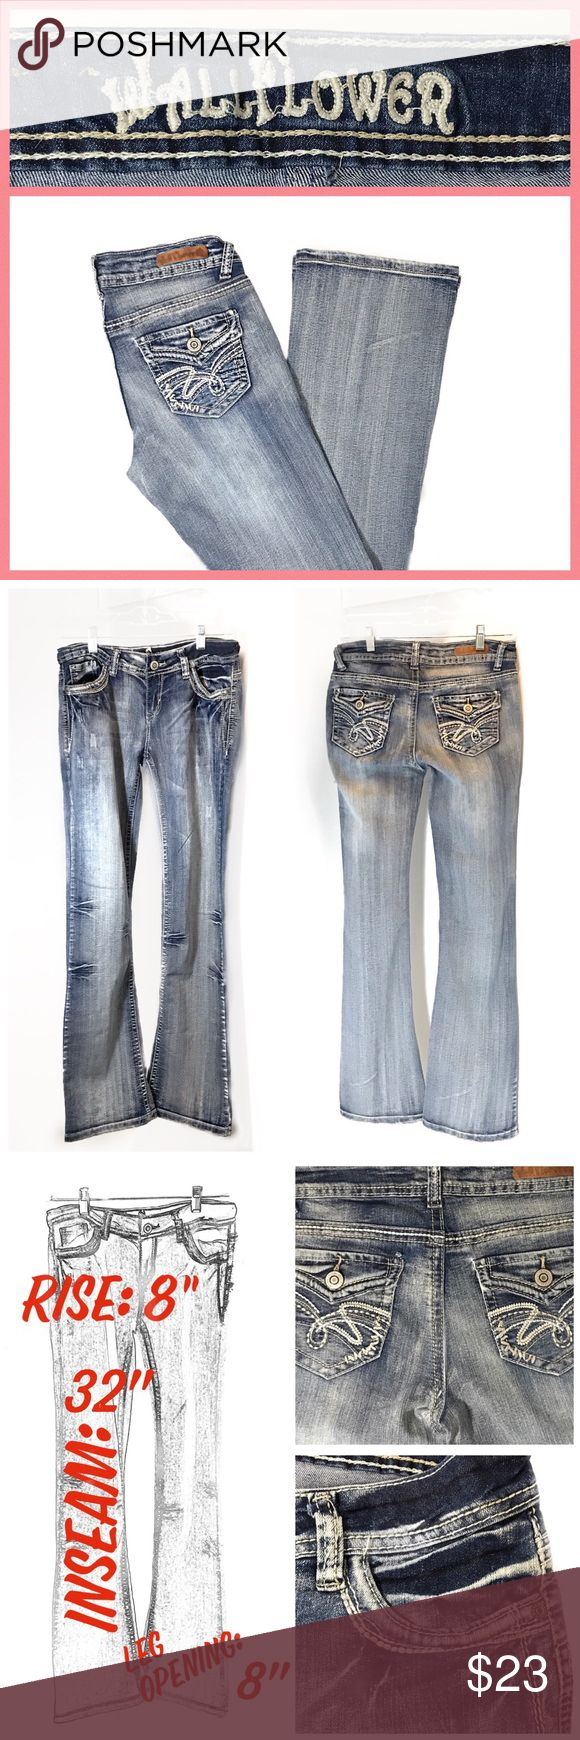 🌸Sz 9 WALLFLOWER Acid Wash Jeans NWOT WALLFLOWER Jeans Legendary Bootcut Acid Wash-NWOT-Purchased last year from Kohl's.  Size-9-Very cute jeans they do have a little stretch to them... ⁃Please see pics for additional info and approx: measurements ⁃Please ask any questions, Thank You!   Happy Poshing! ⁃Deb   @bootz1342 Wallflower Jeans Boot Cut